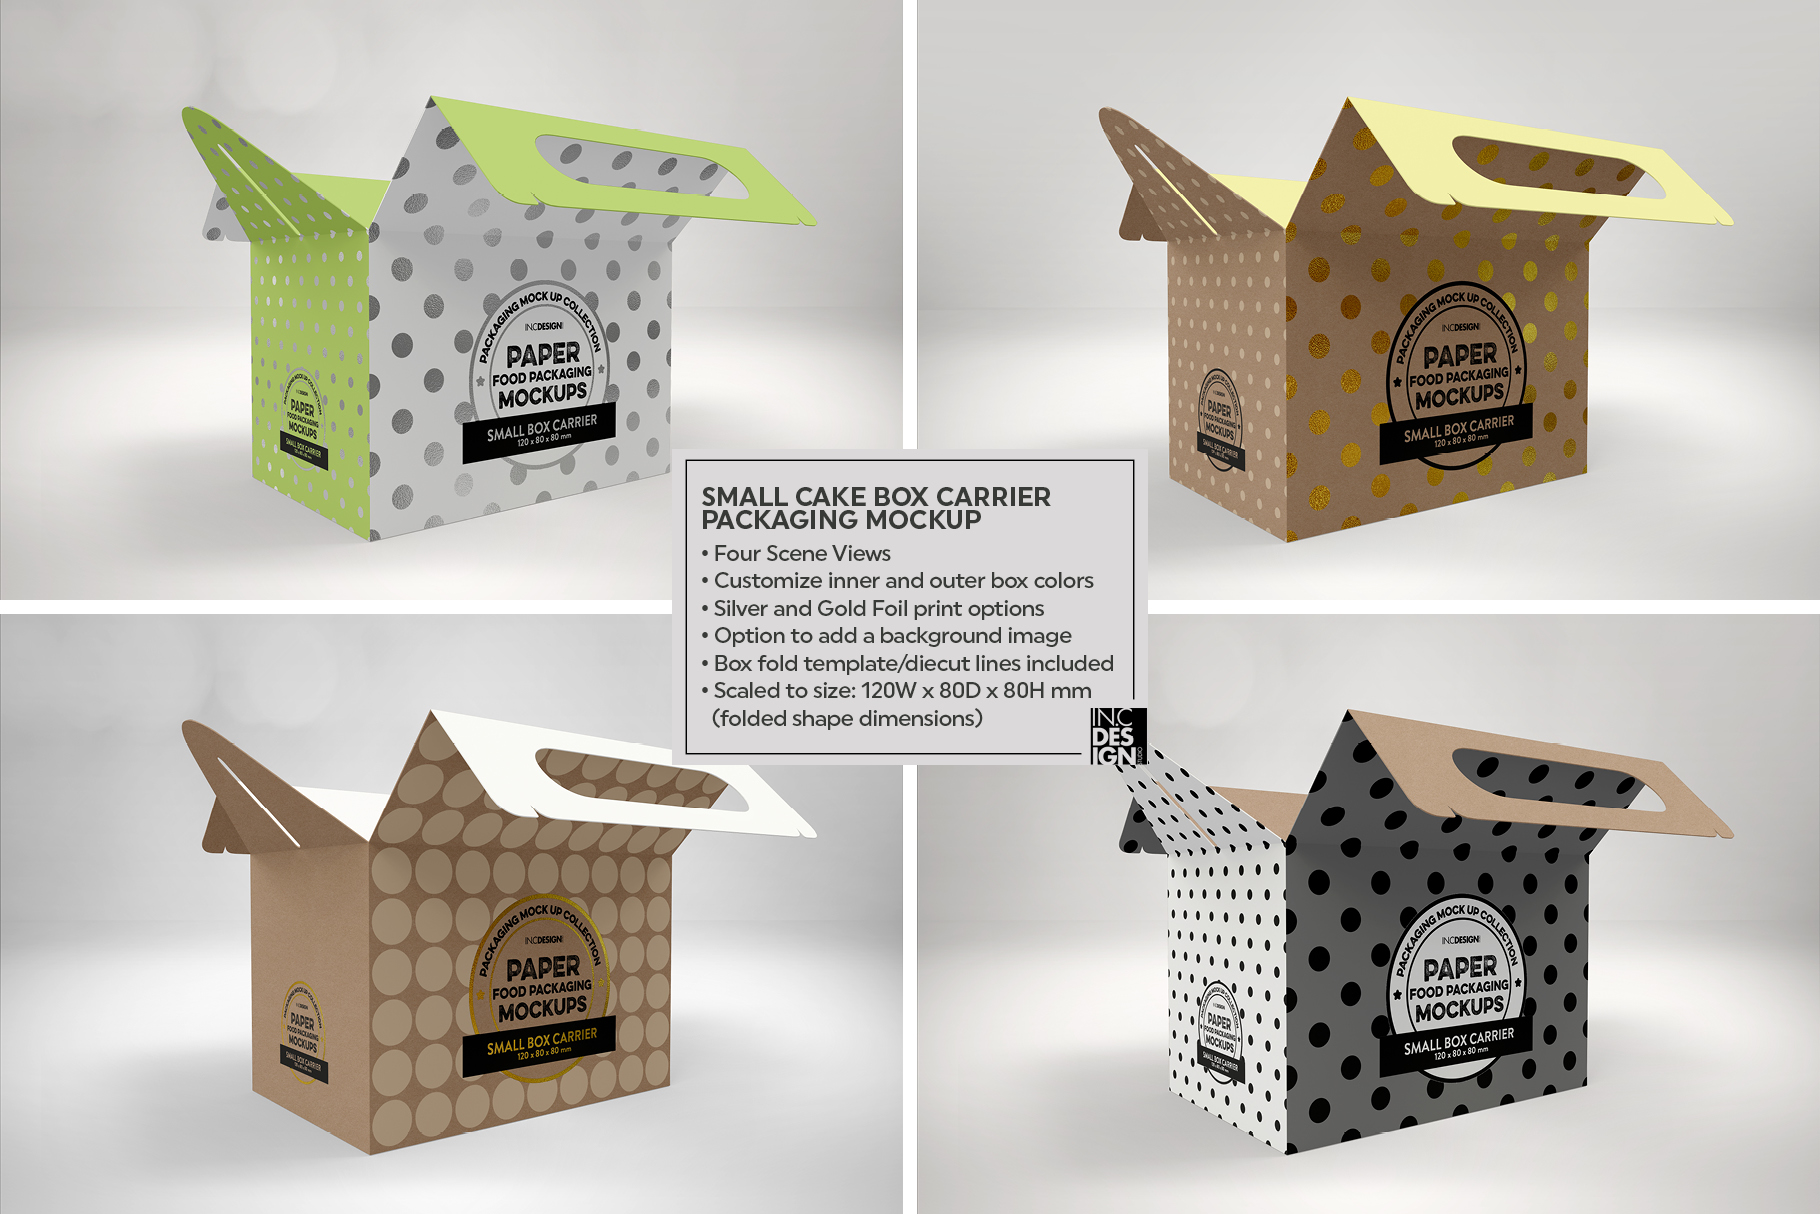 Small Cake Box Carrier Packaging Mockup example image 2